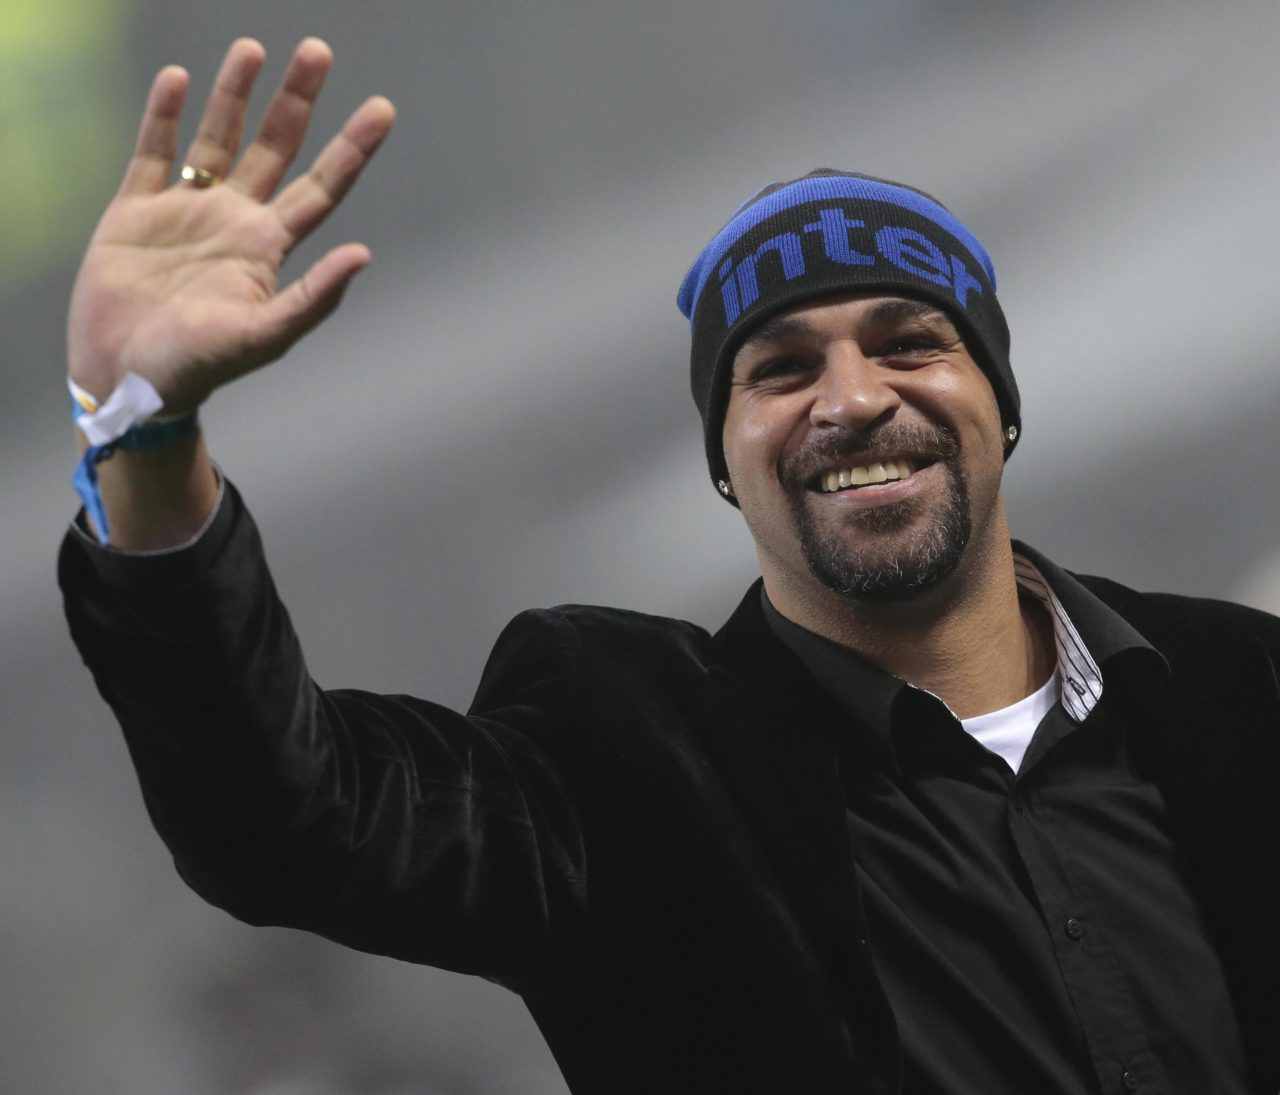 epa05684932 Former Inter's forward Adriano Leite Ribeiro greets supporters prior to the Italian Serie A soccer match Inter FC vs SS Lazio at Giuseppe Meazza stadium in Milan, Italy, 21 December 2016. EPA/EMILIO ANDREOLI